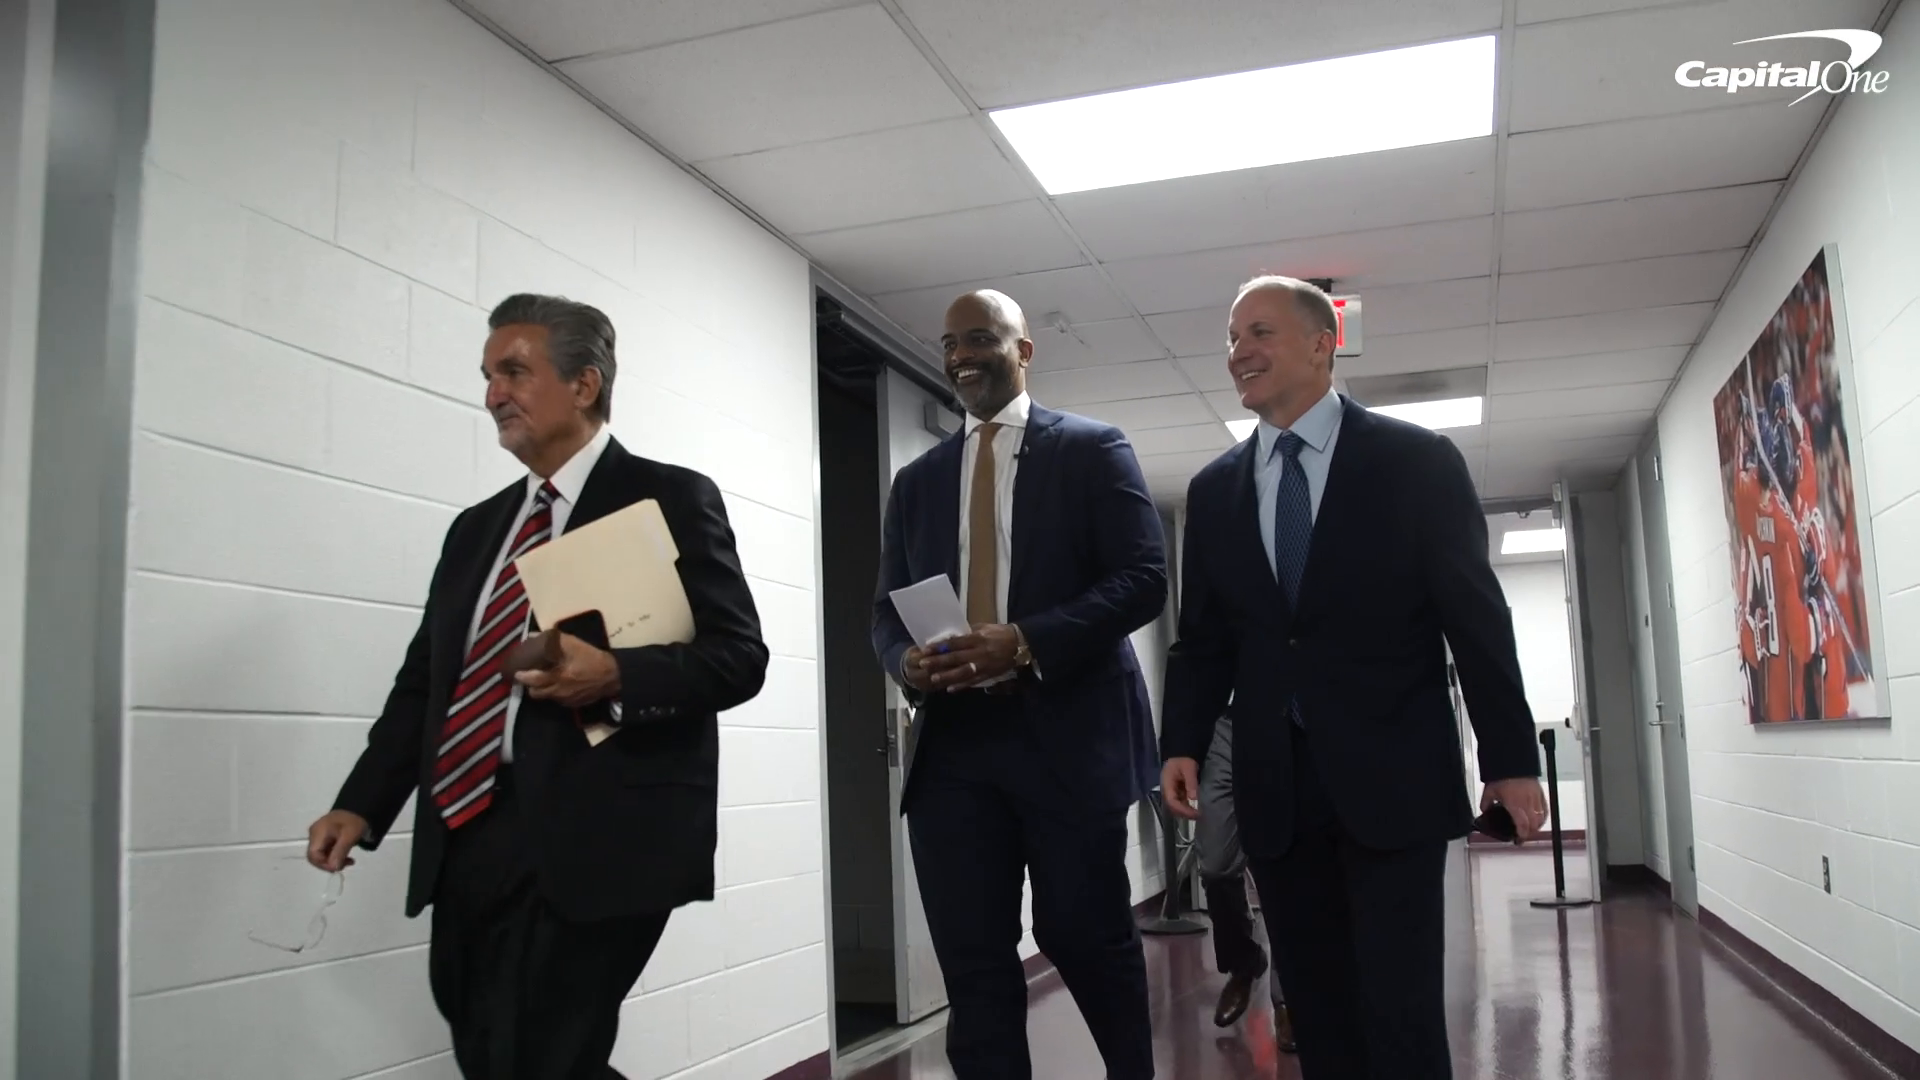 Behind the scenes: Wes Unseld Jr.'s first day in D.C.